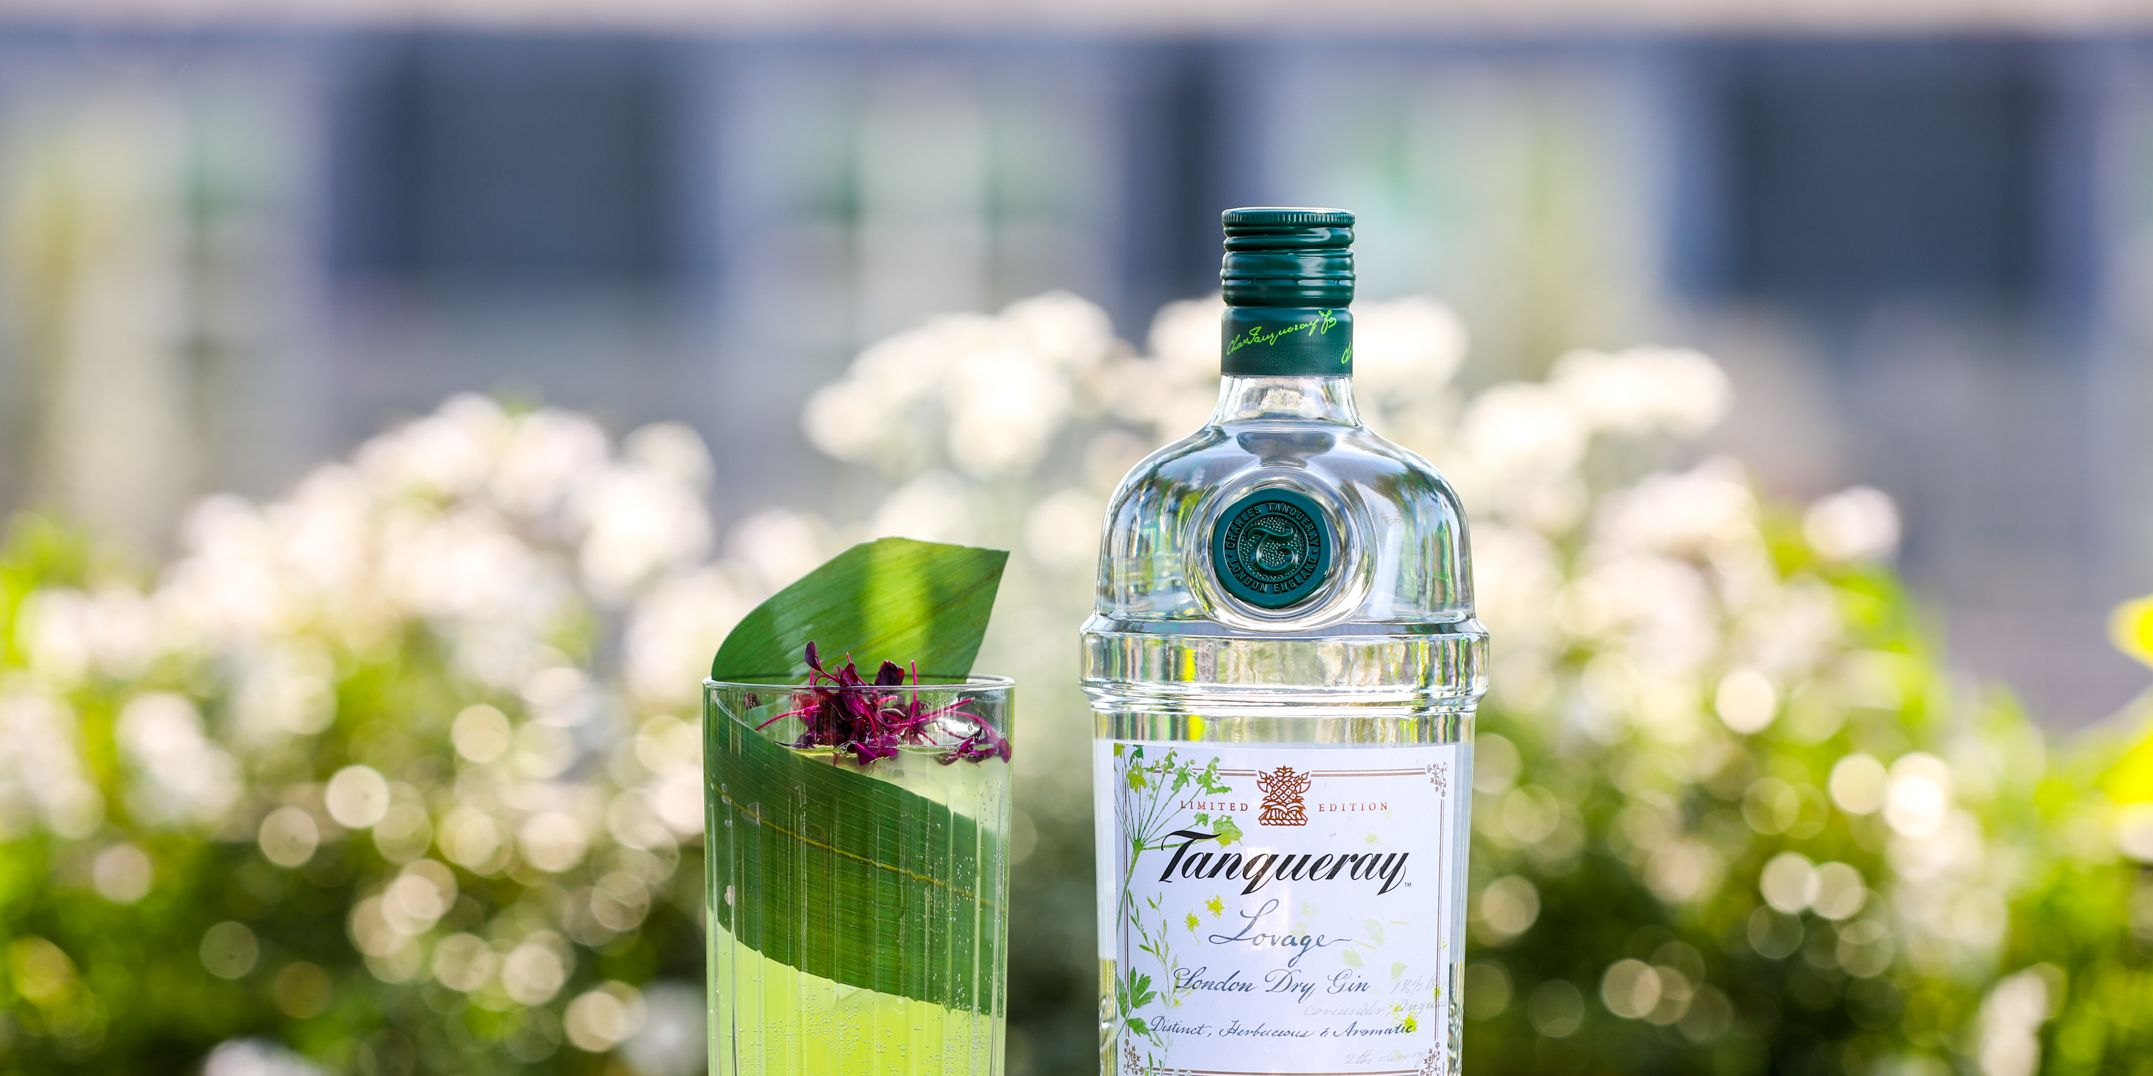 Tanqueray gin lovage